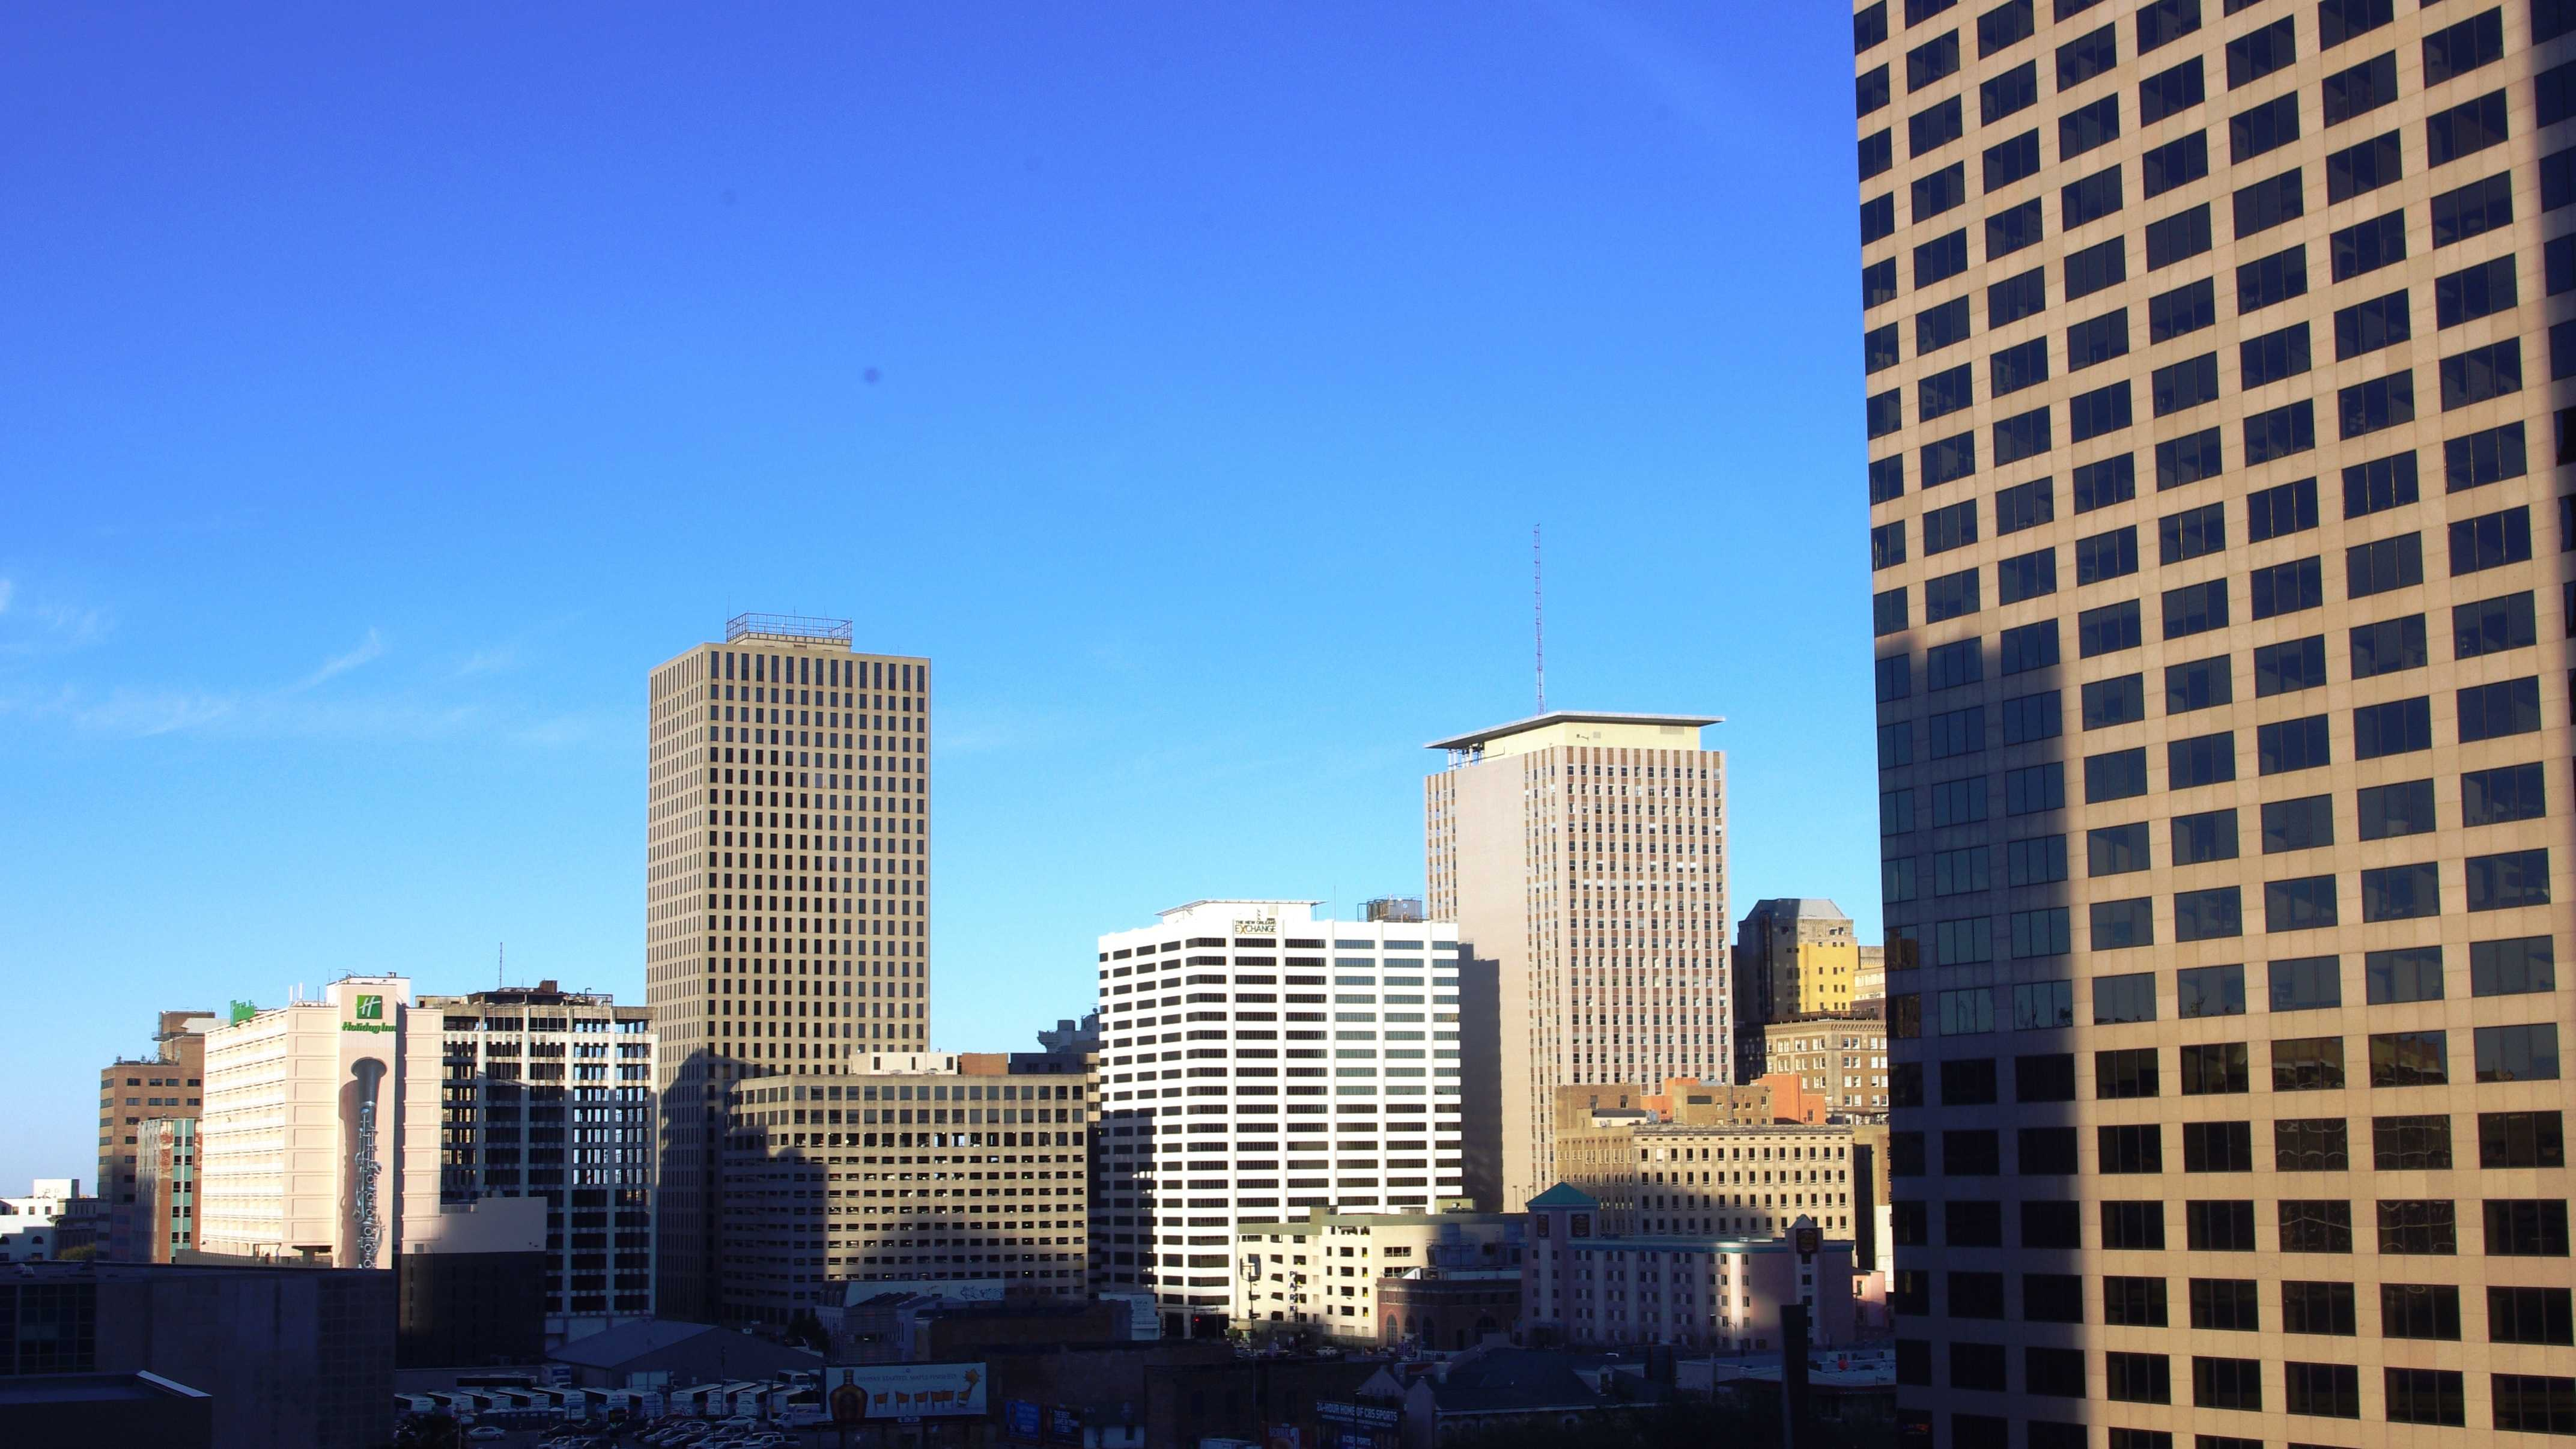 The Central Business District of New Orleans